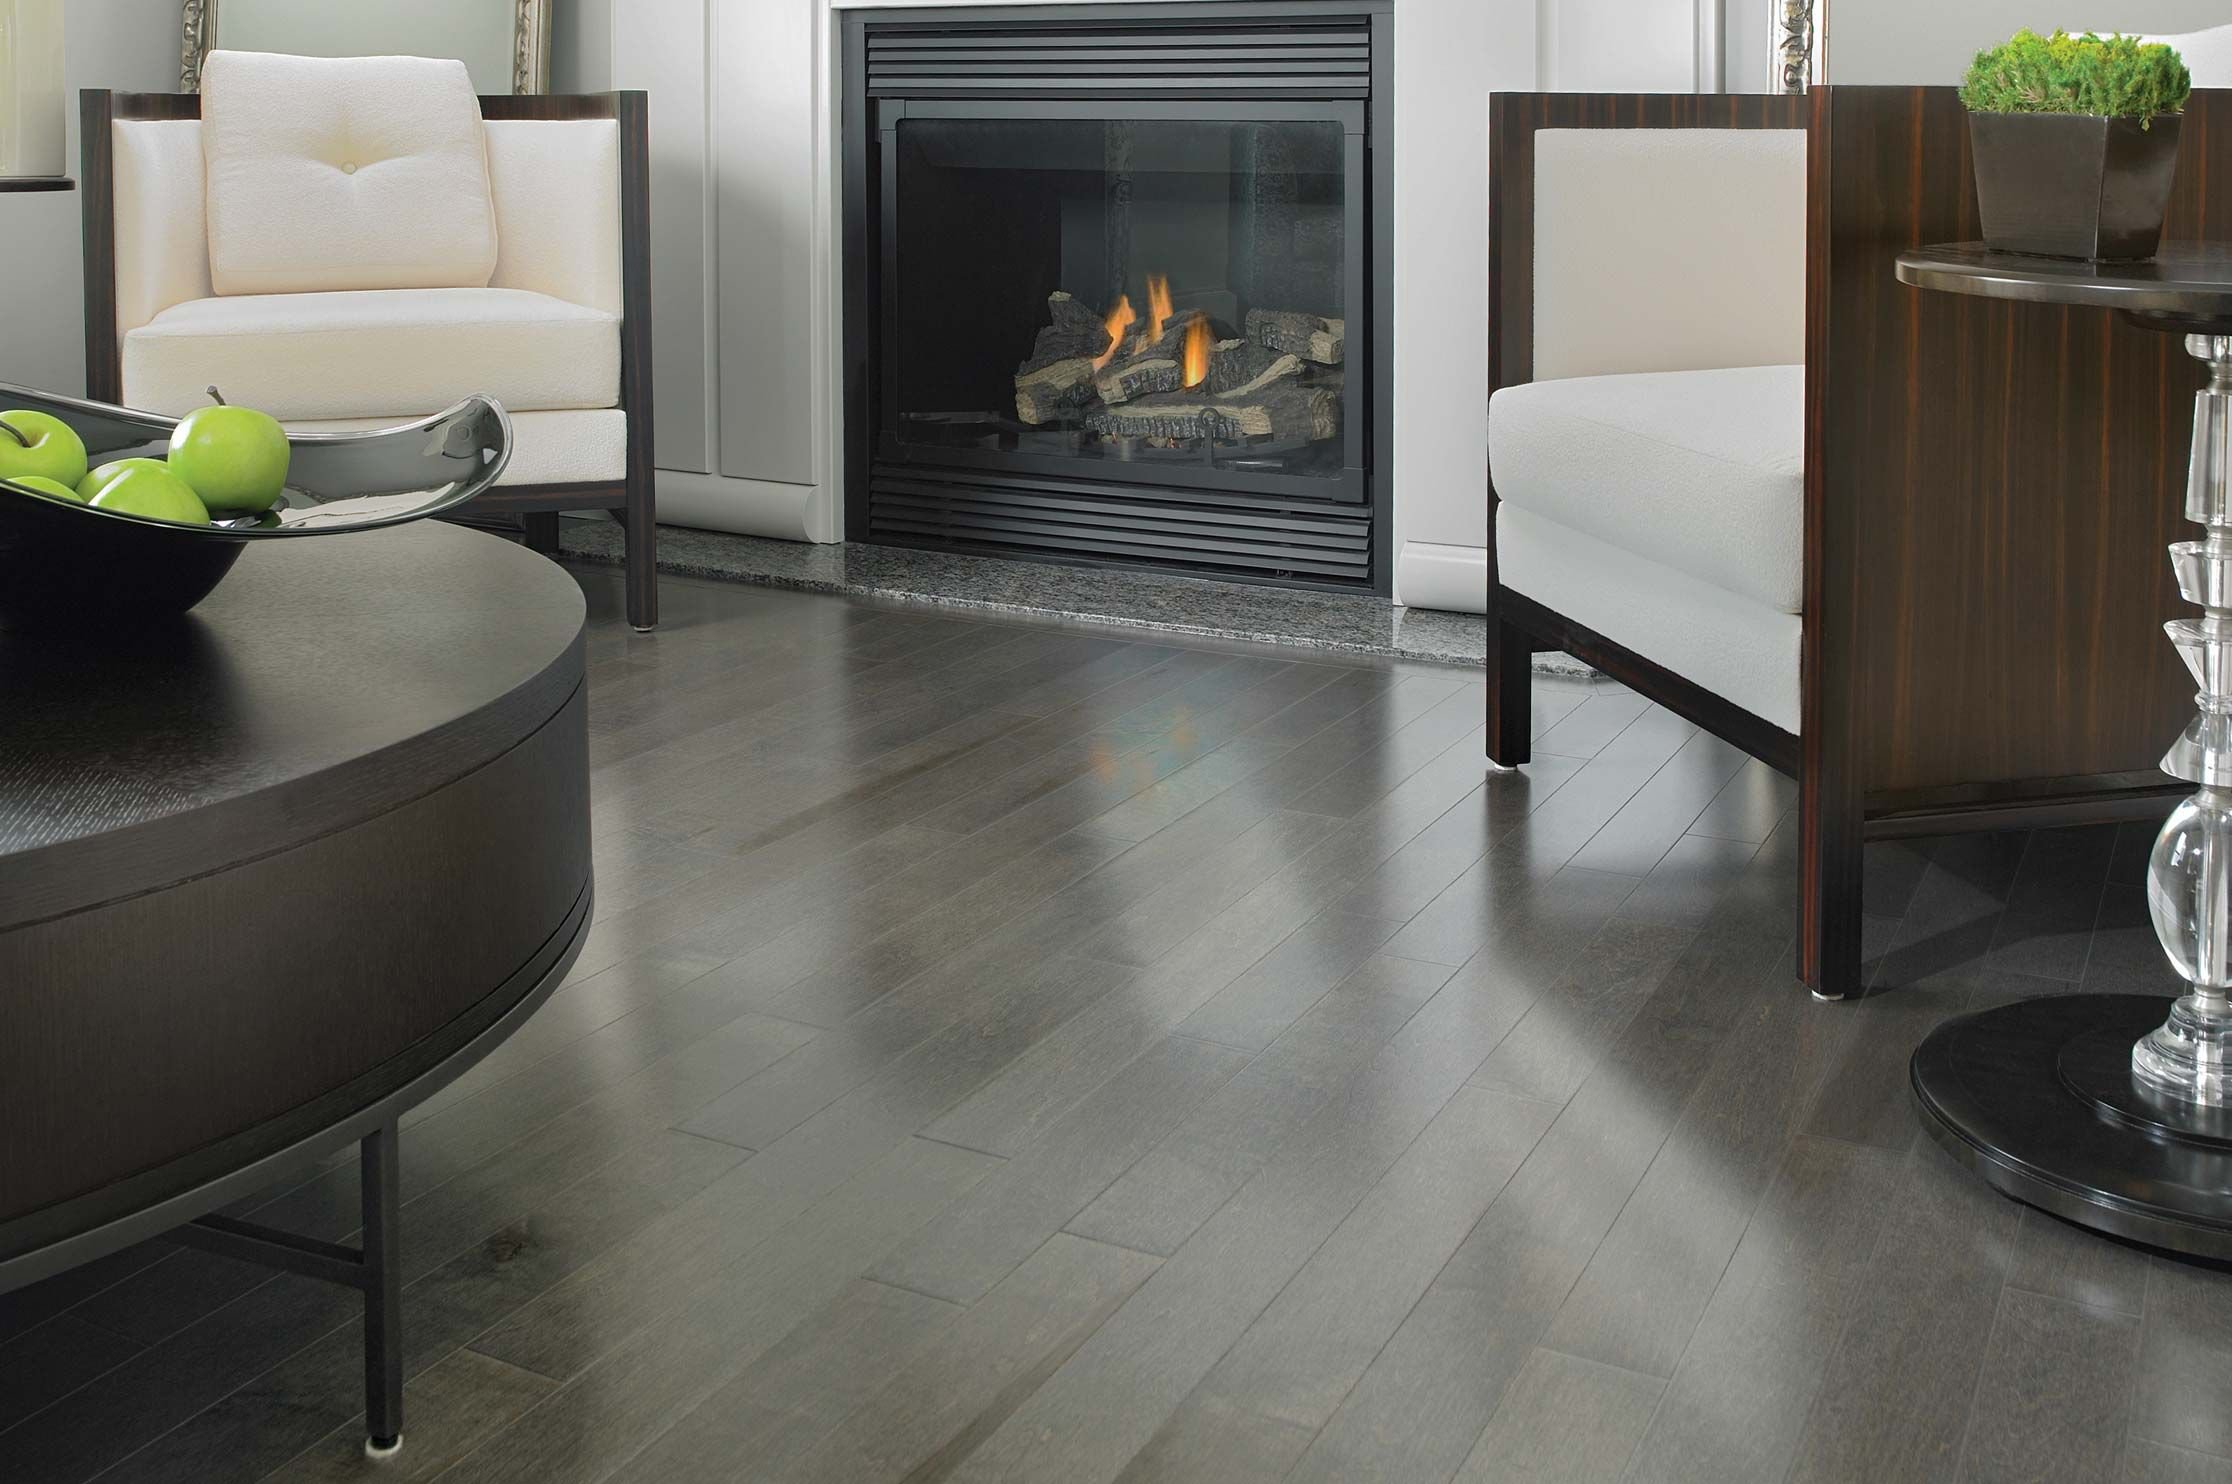 Admiration maple charcoal mirage hardwood floors for White hardwood floors design ideas